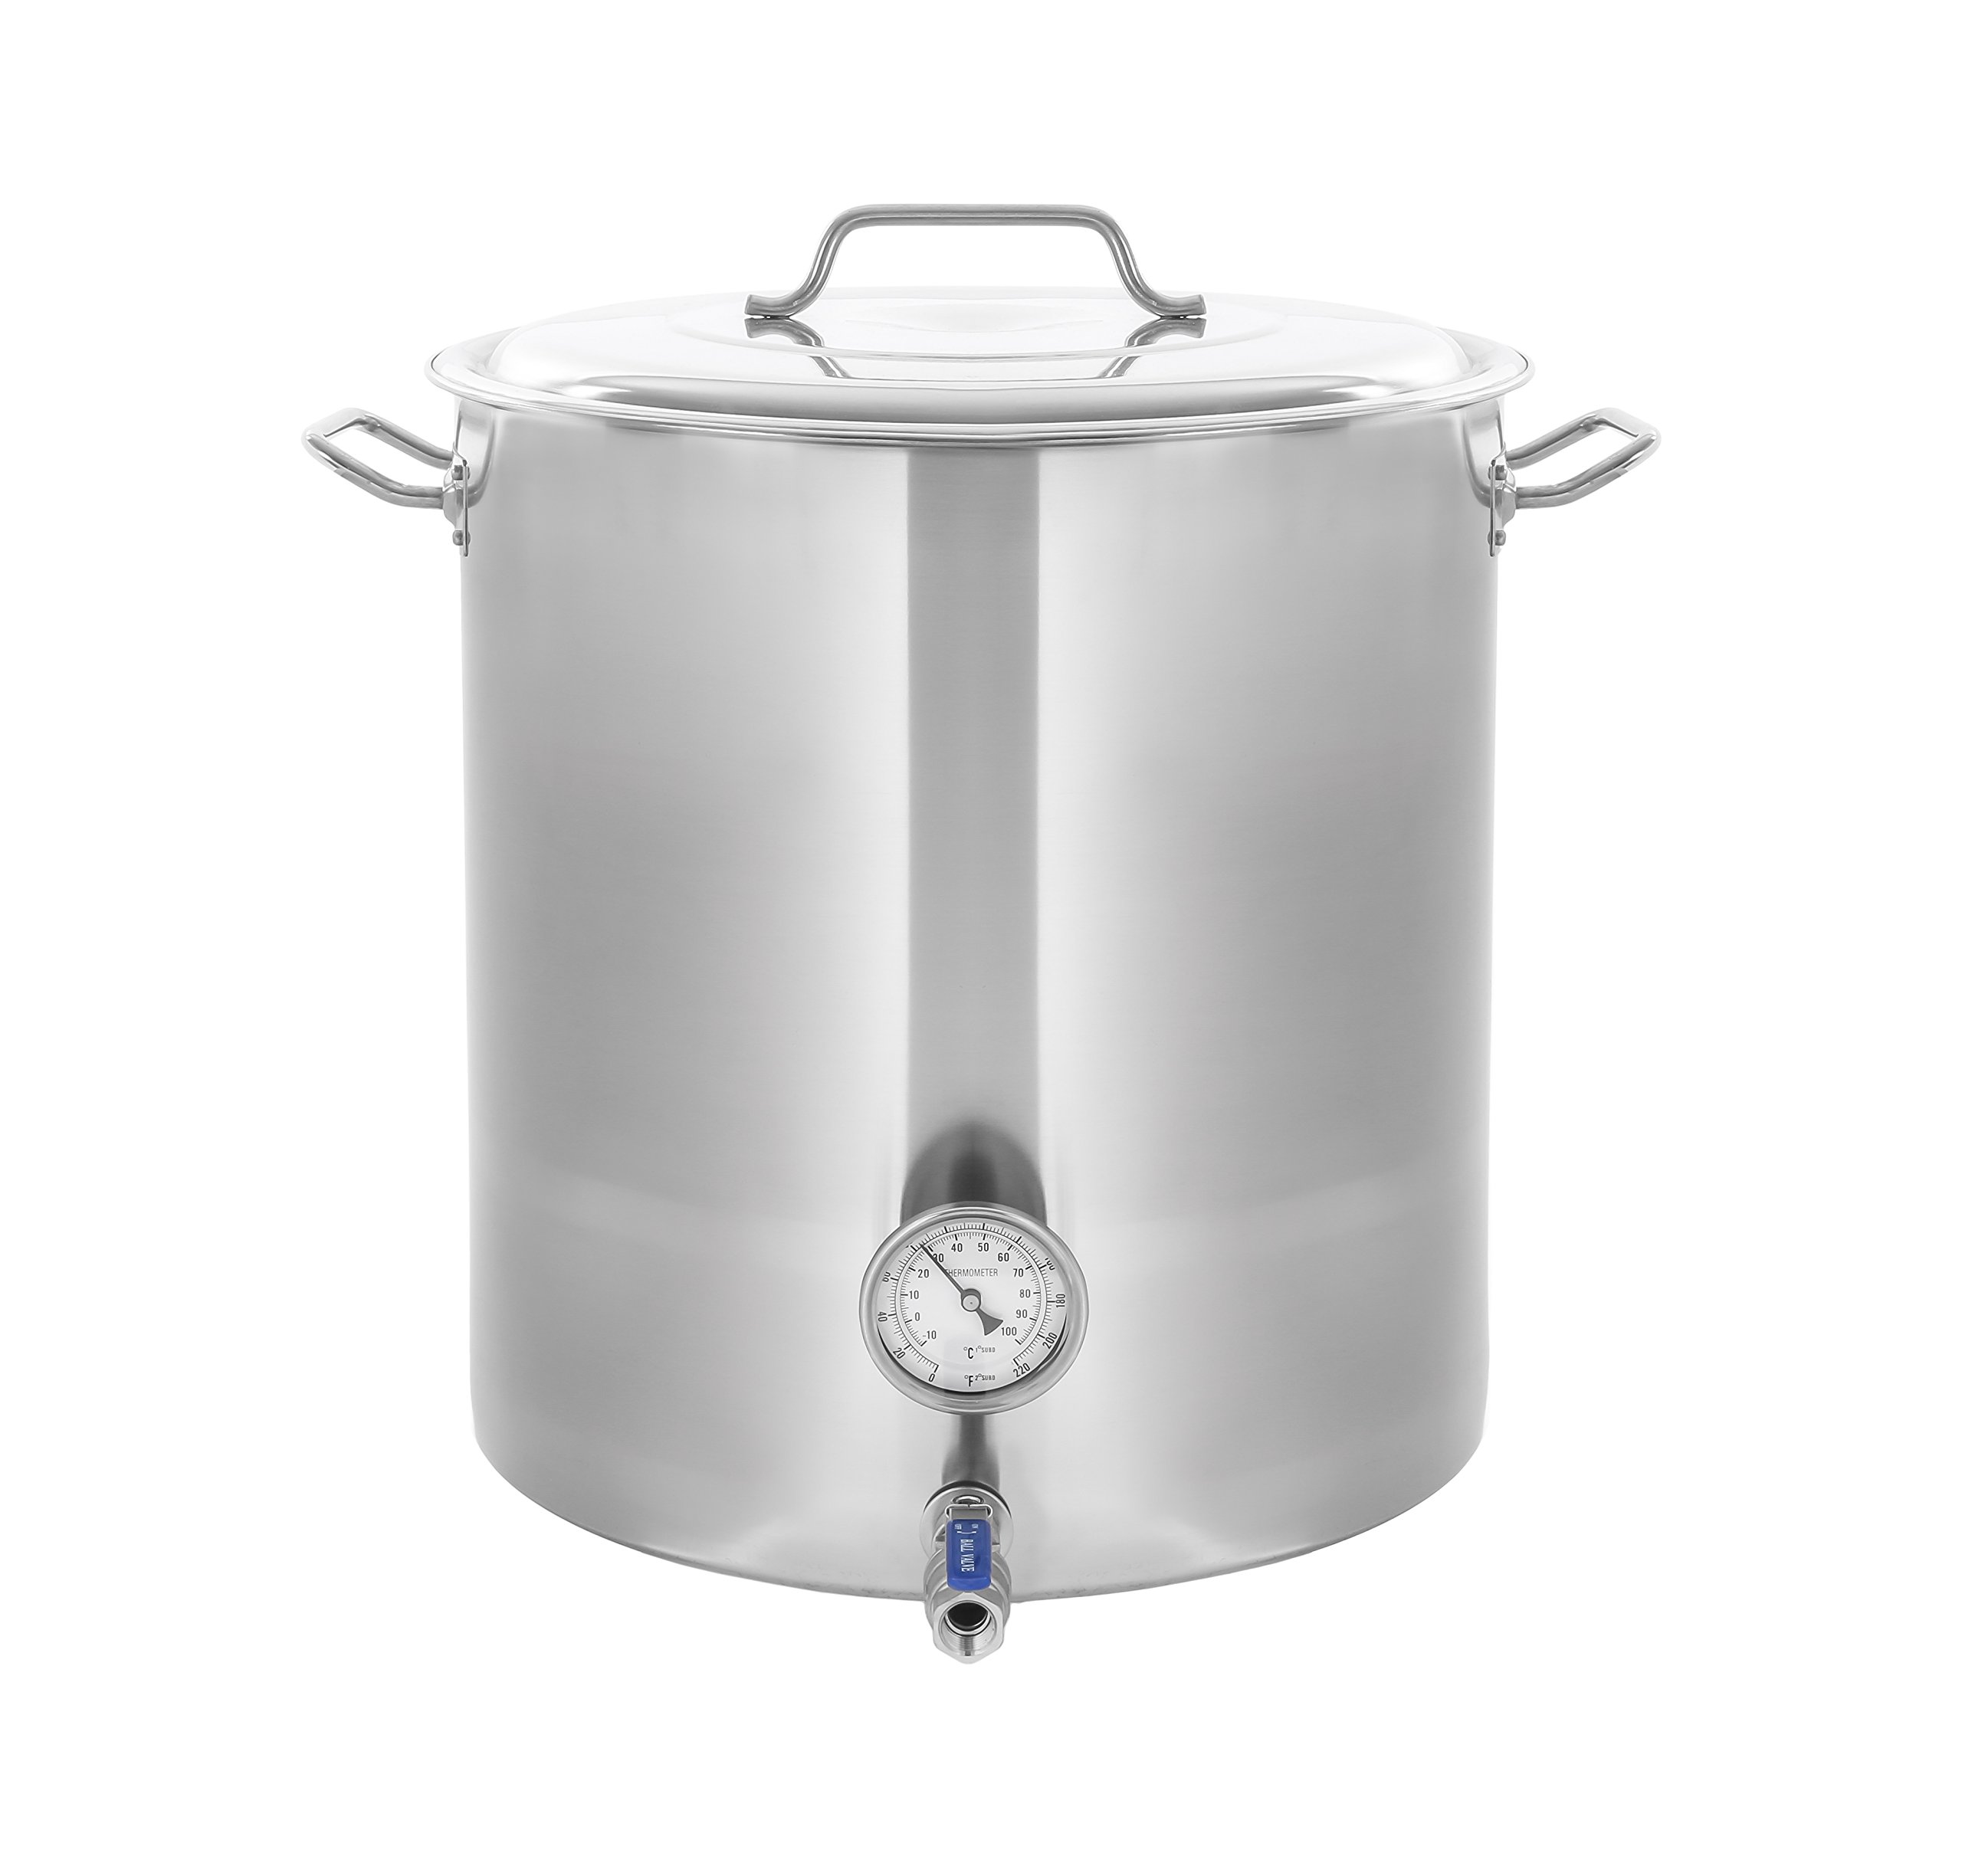 CONCORD Stainless Steel Home Brew Kettle Stock Pot (Weldless Fittings) (40 QT/ 10 Gal) by Concord Cookware